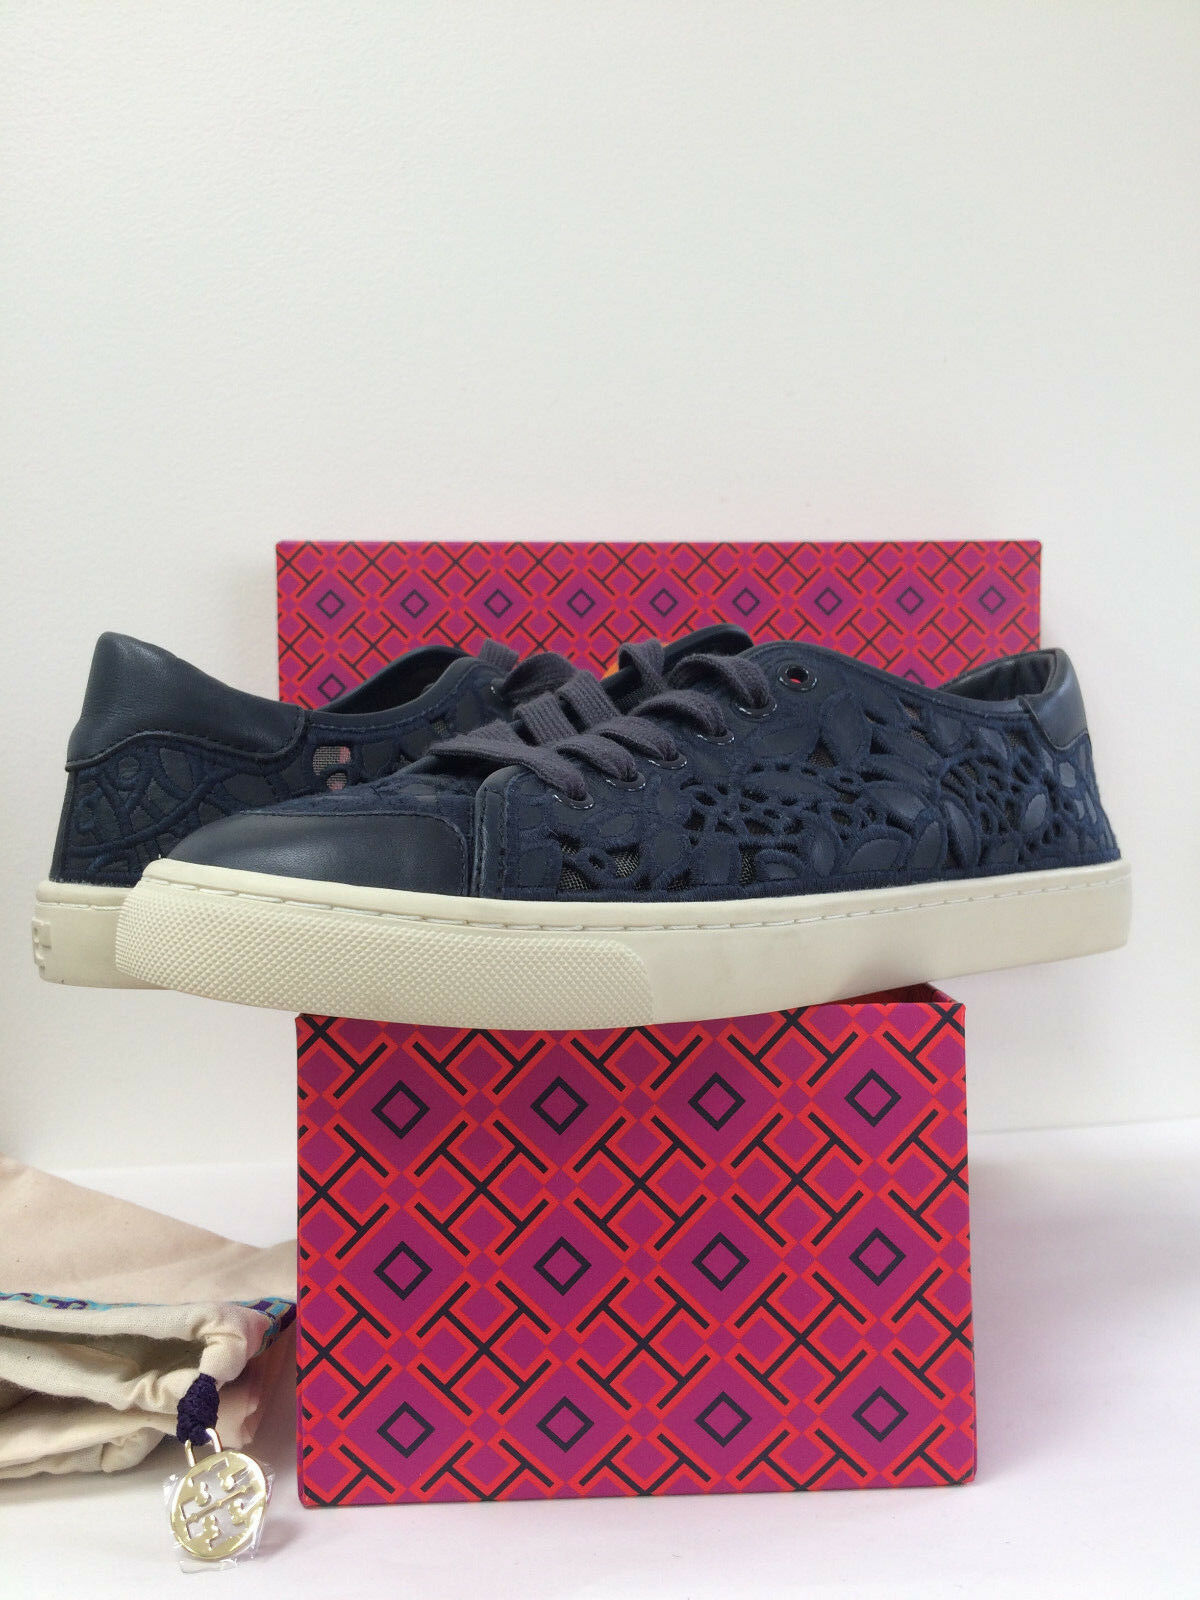 New Tory burch Rhea Embroidery Leather Lace Mesh Sneaker Tori Navy Sz 8.5M 9.5M